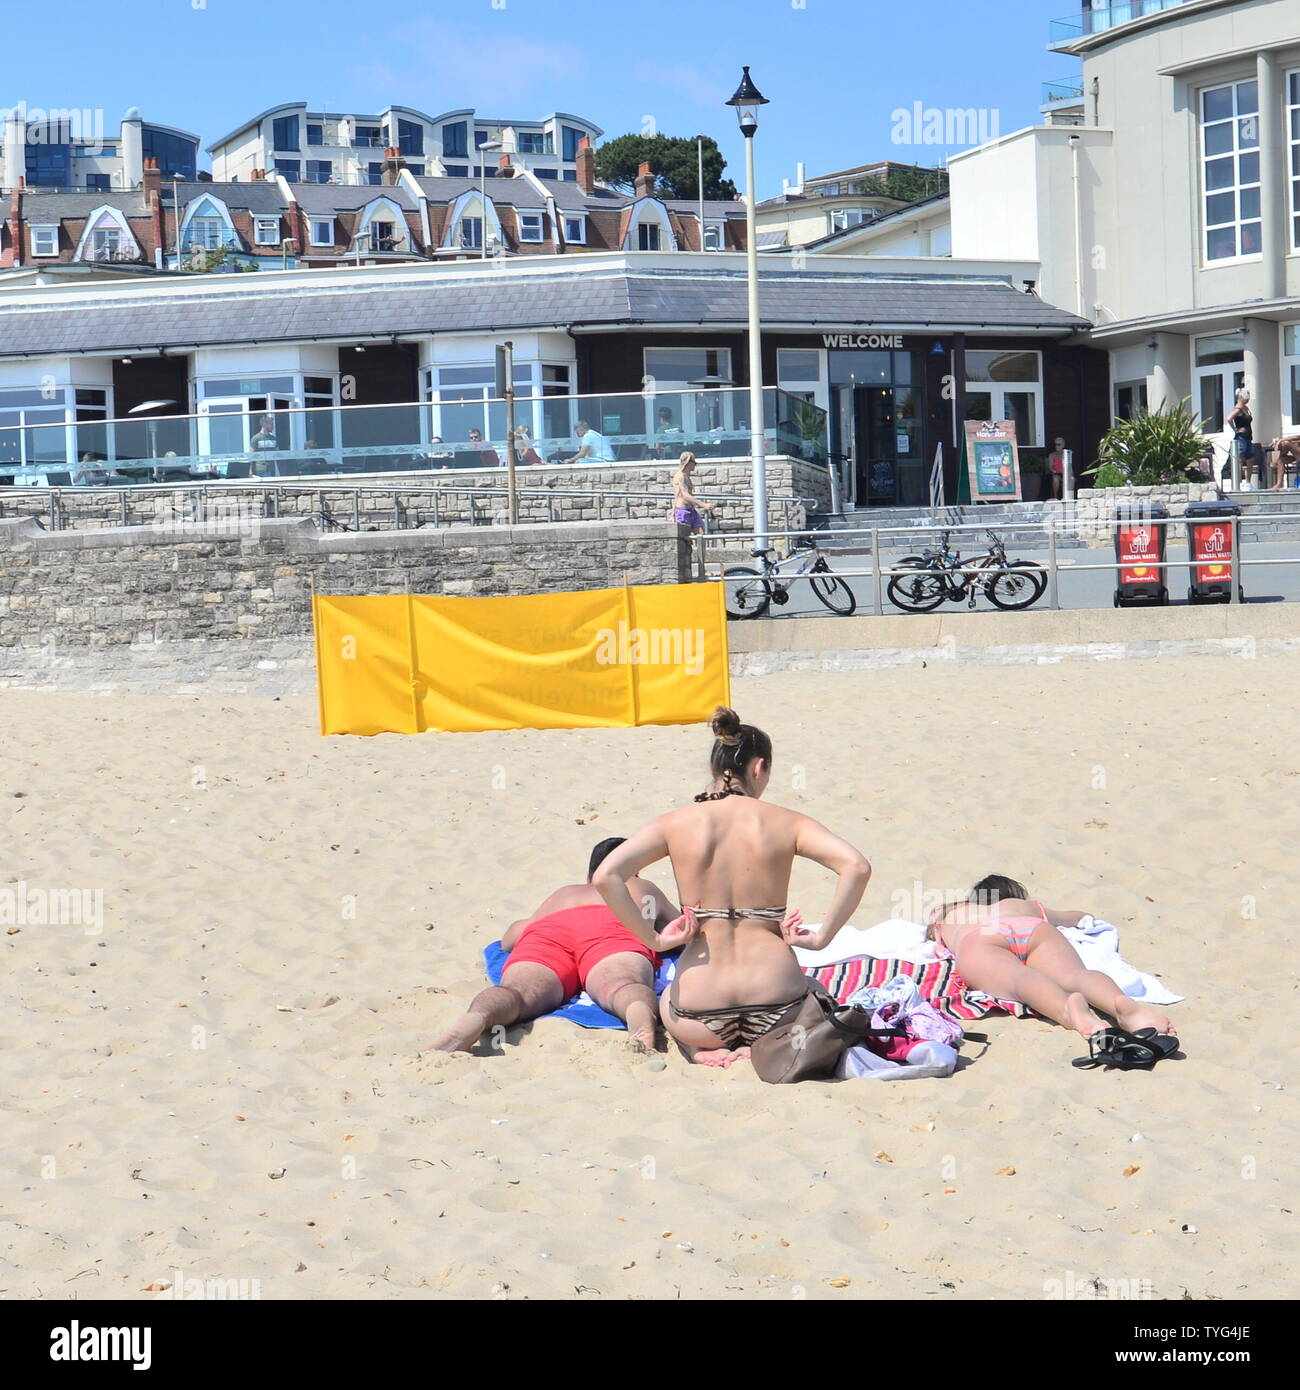 Boscombe, Bournemouth, Dorset, England, UK. 26th June, 2019. Weather: Temperatures are rising as a heatwave in Europe spills over into southern England. People head to the beach to enjoy the first real spell of good weather this summer. Credit: Paul Biggins/Alamy Live News Stock Photo